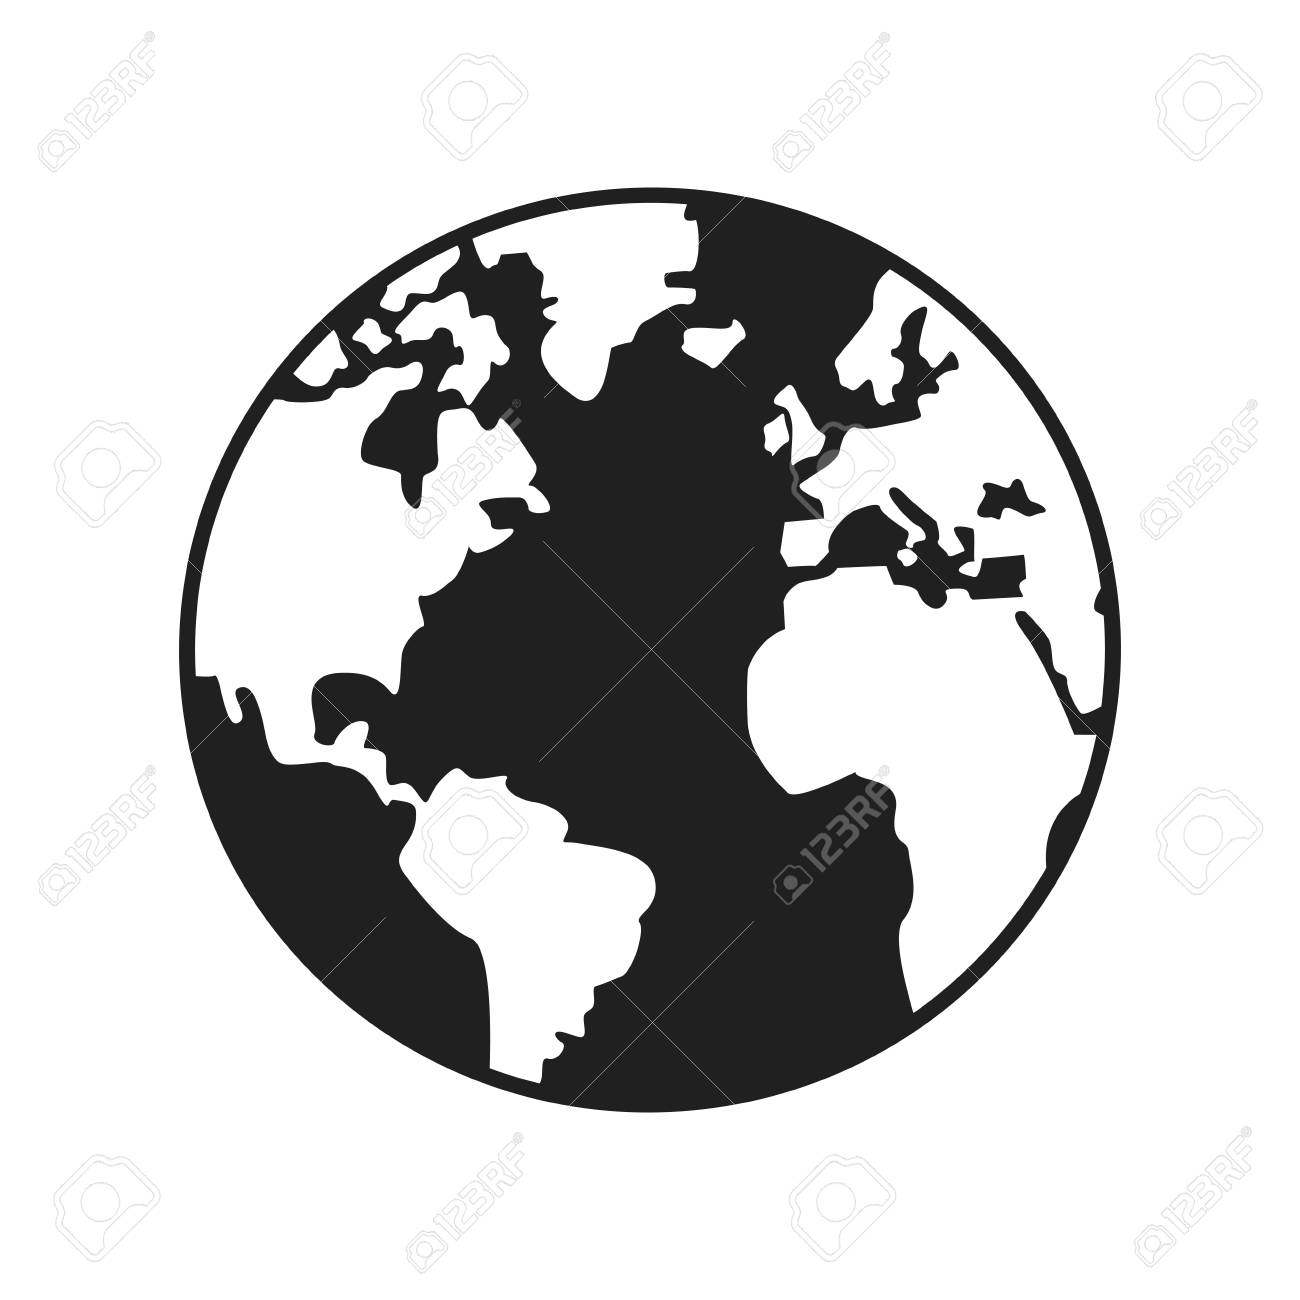 World map earth globes cartography continents vector illustration vector world map earth globes cartography continents vector illustration gumiabroncs Images